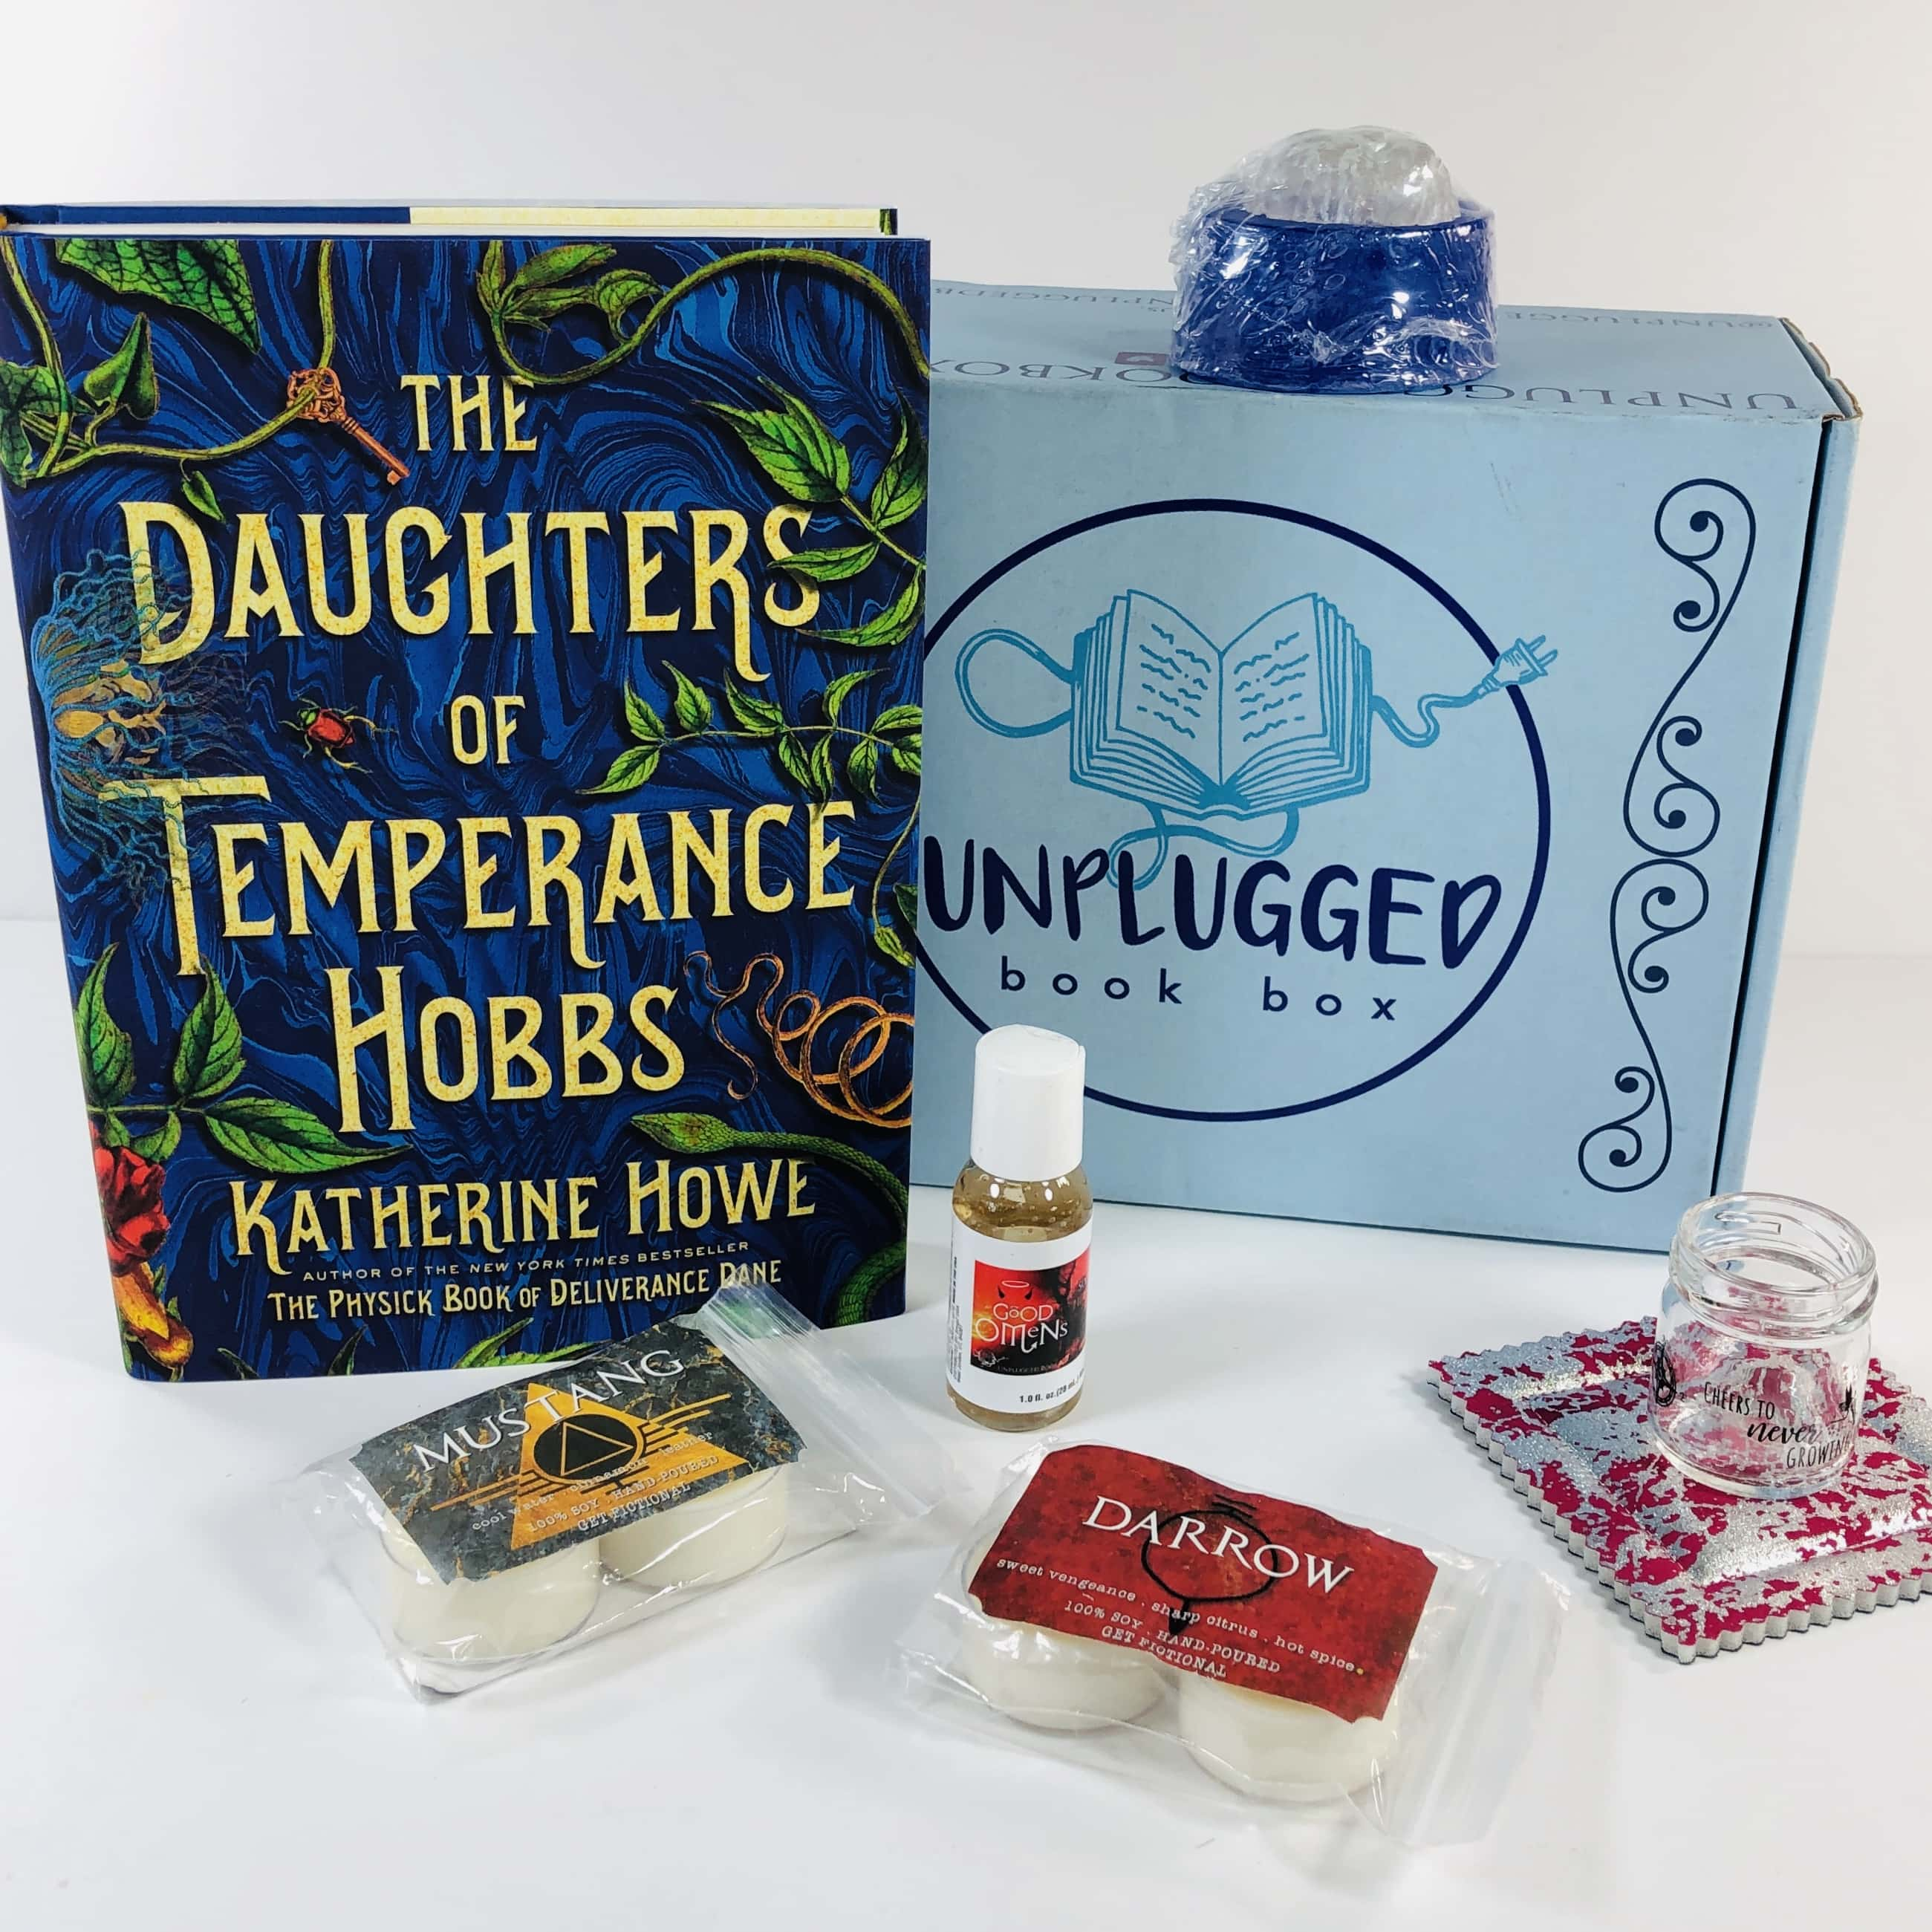 Unplugged Book Box July 2019 Adult Fiction Subscription Box Review + Coupon!